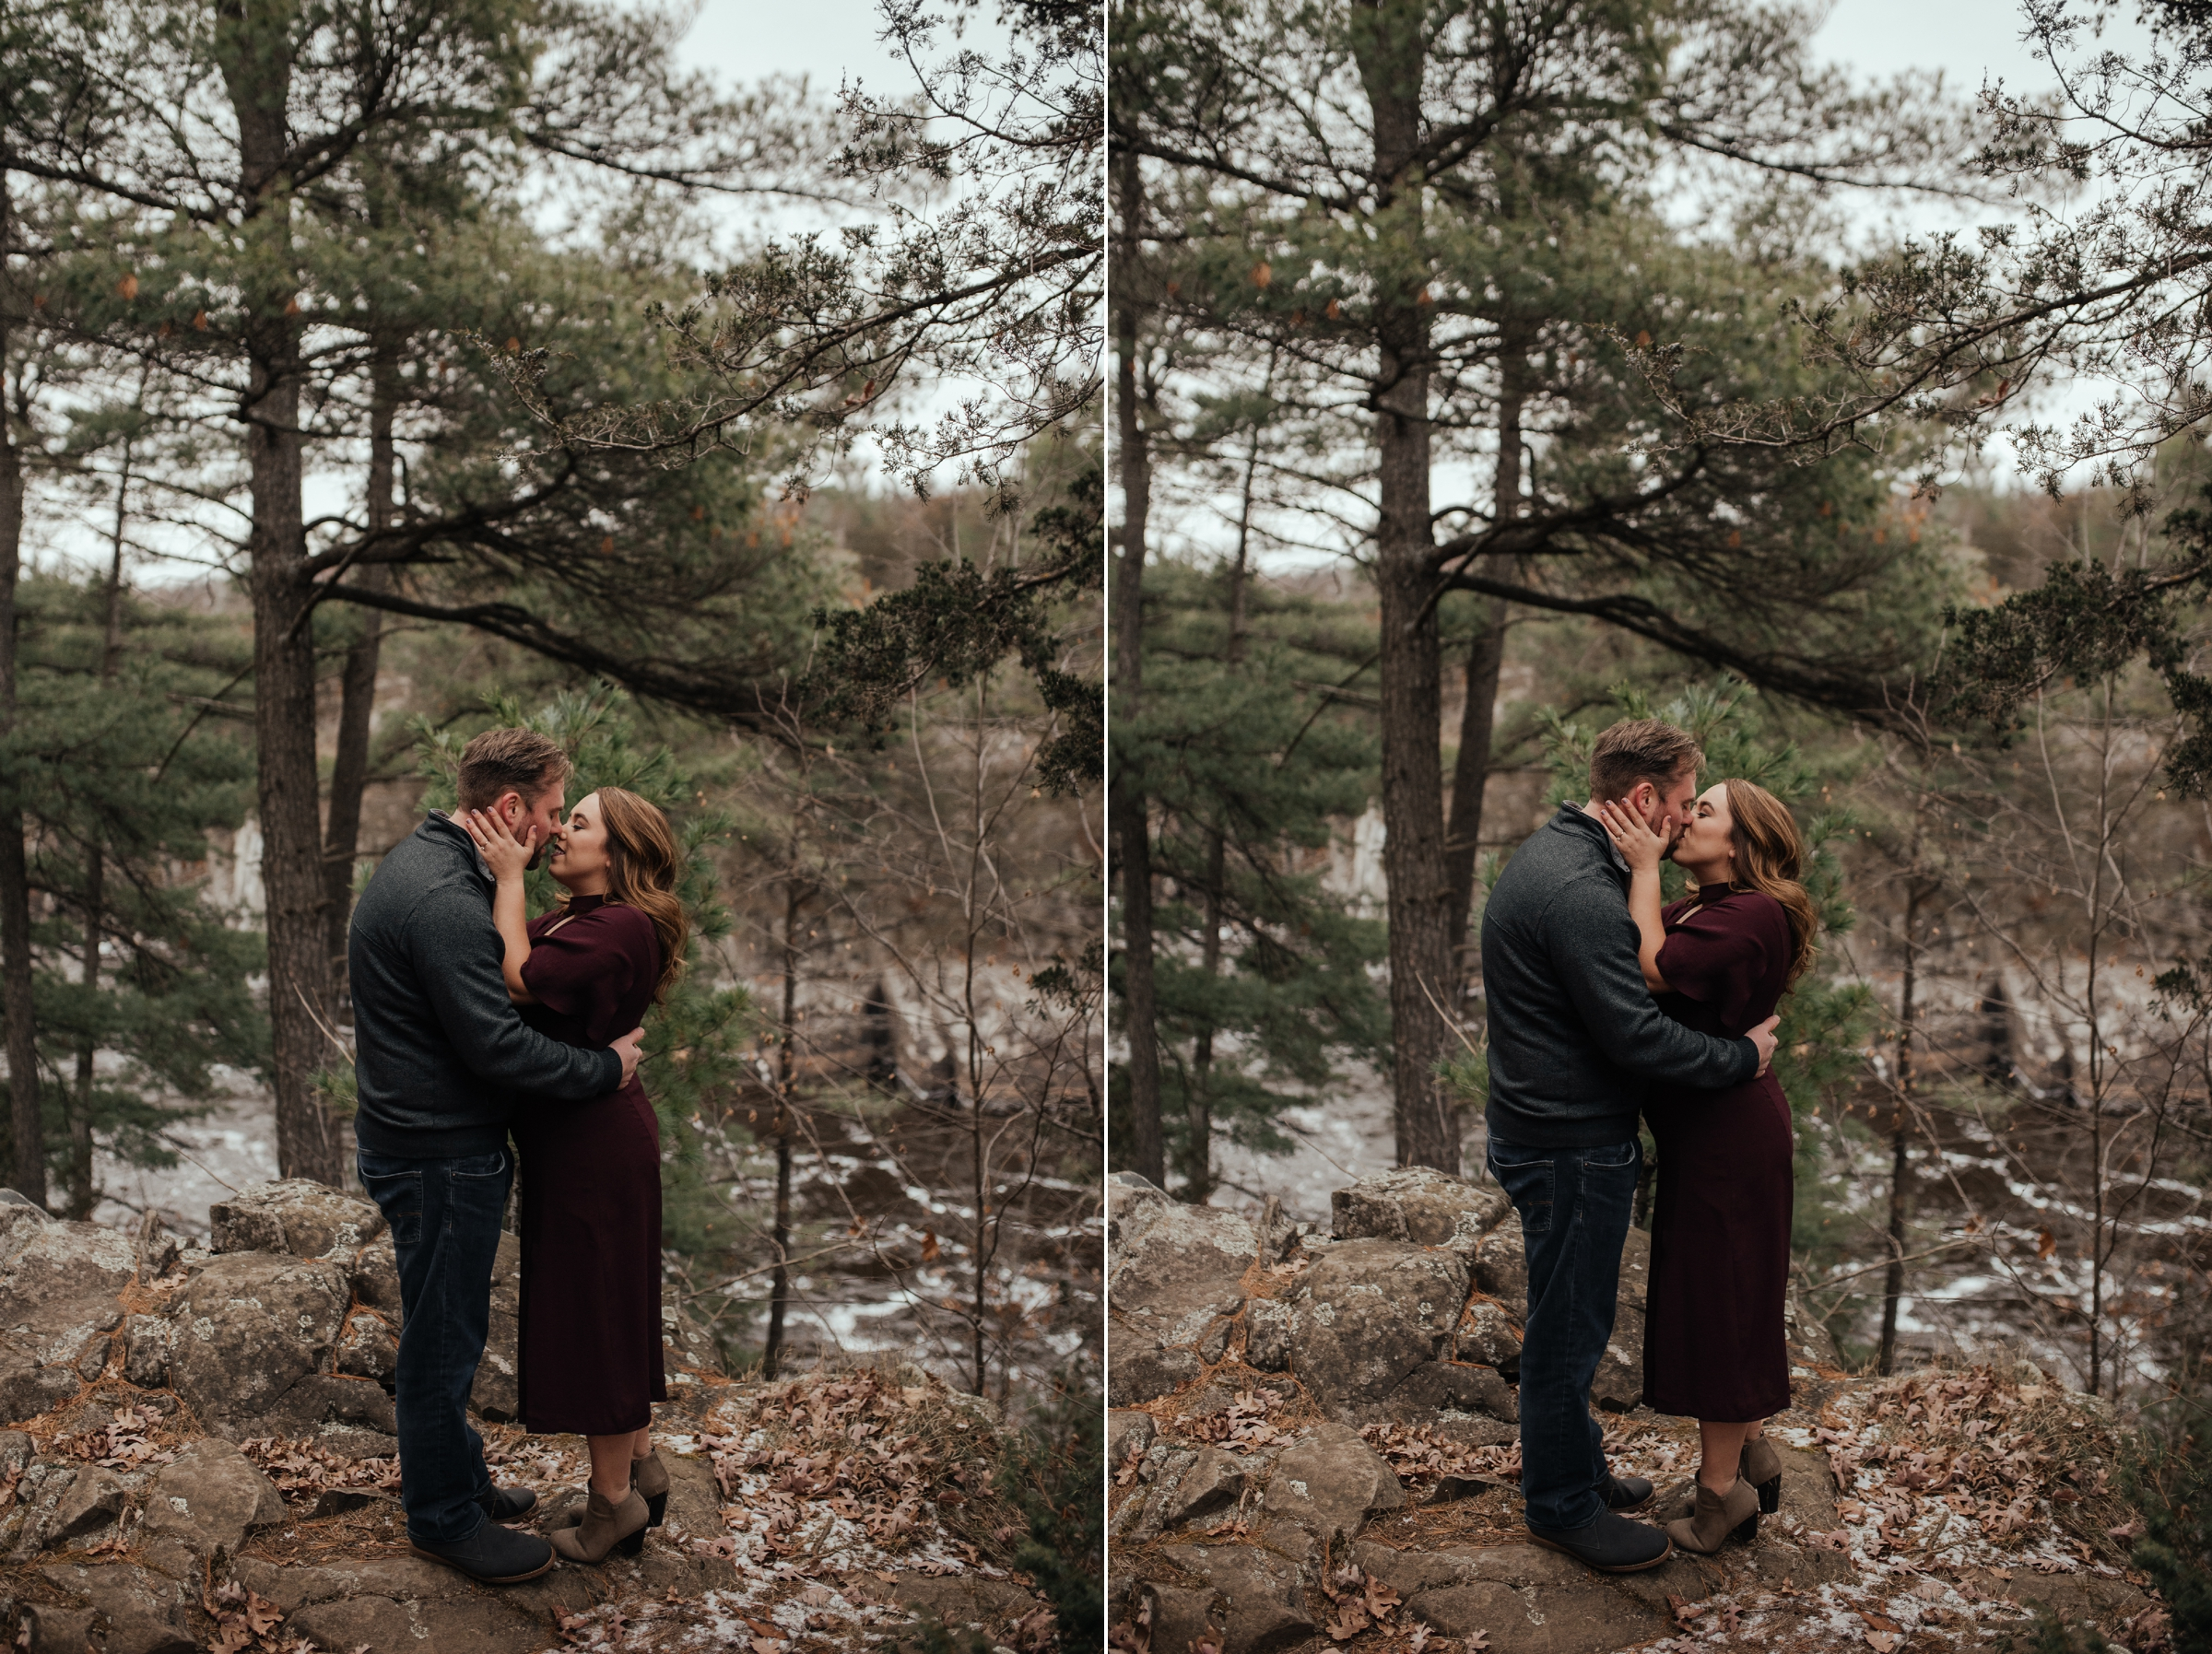 samantha patrick minneapolis minnesota texas austin wedding elopement destination intimate best photographer_0048.jpg